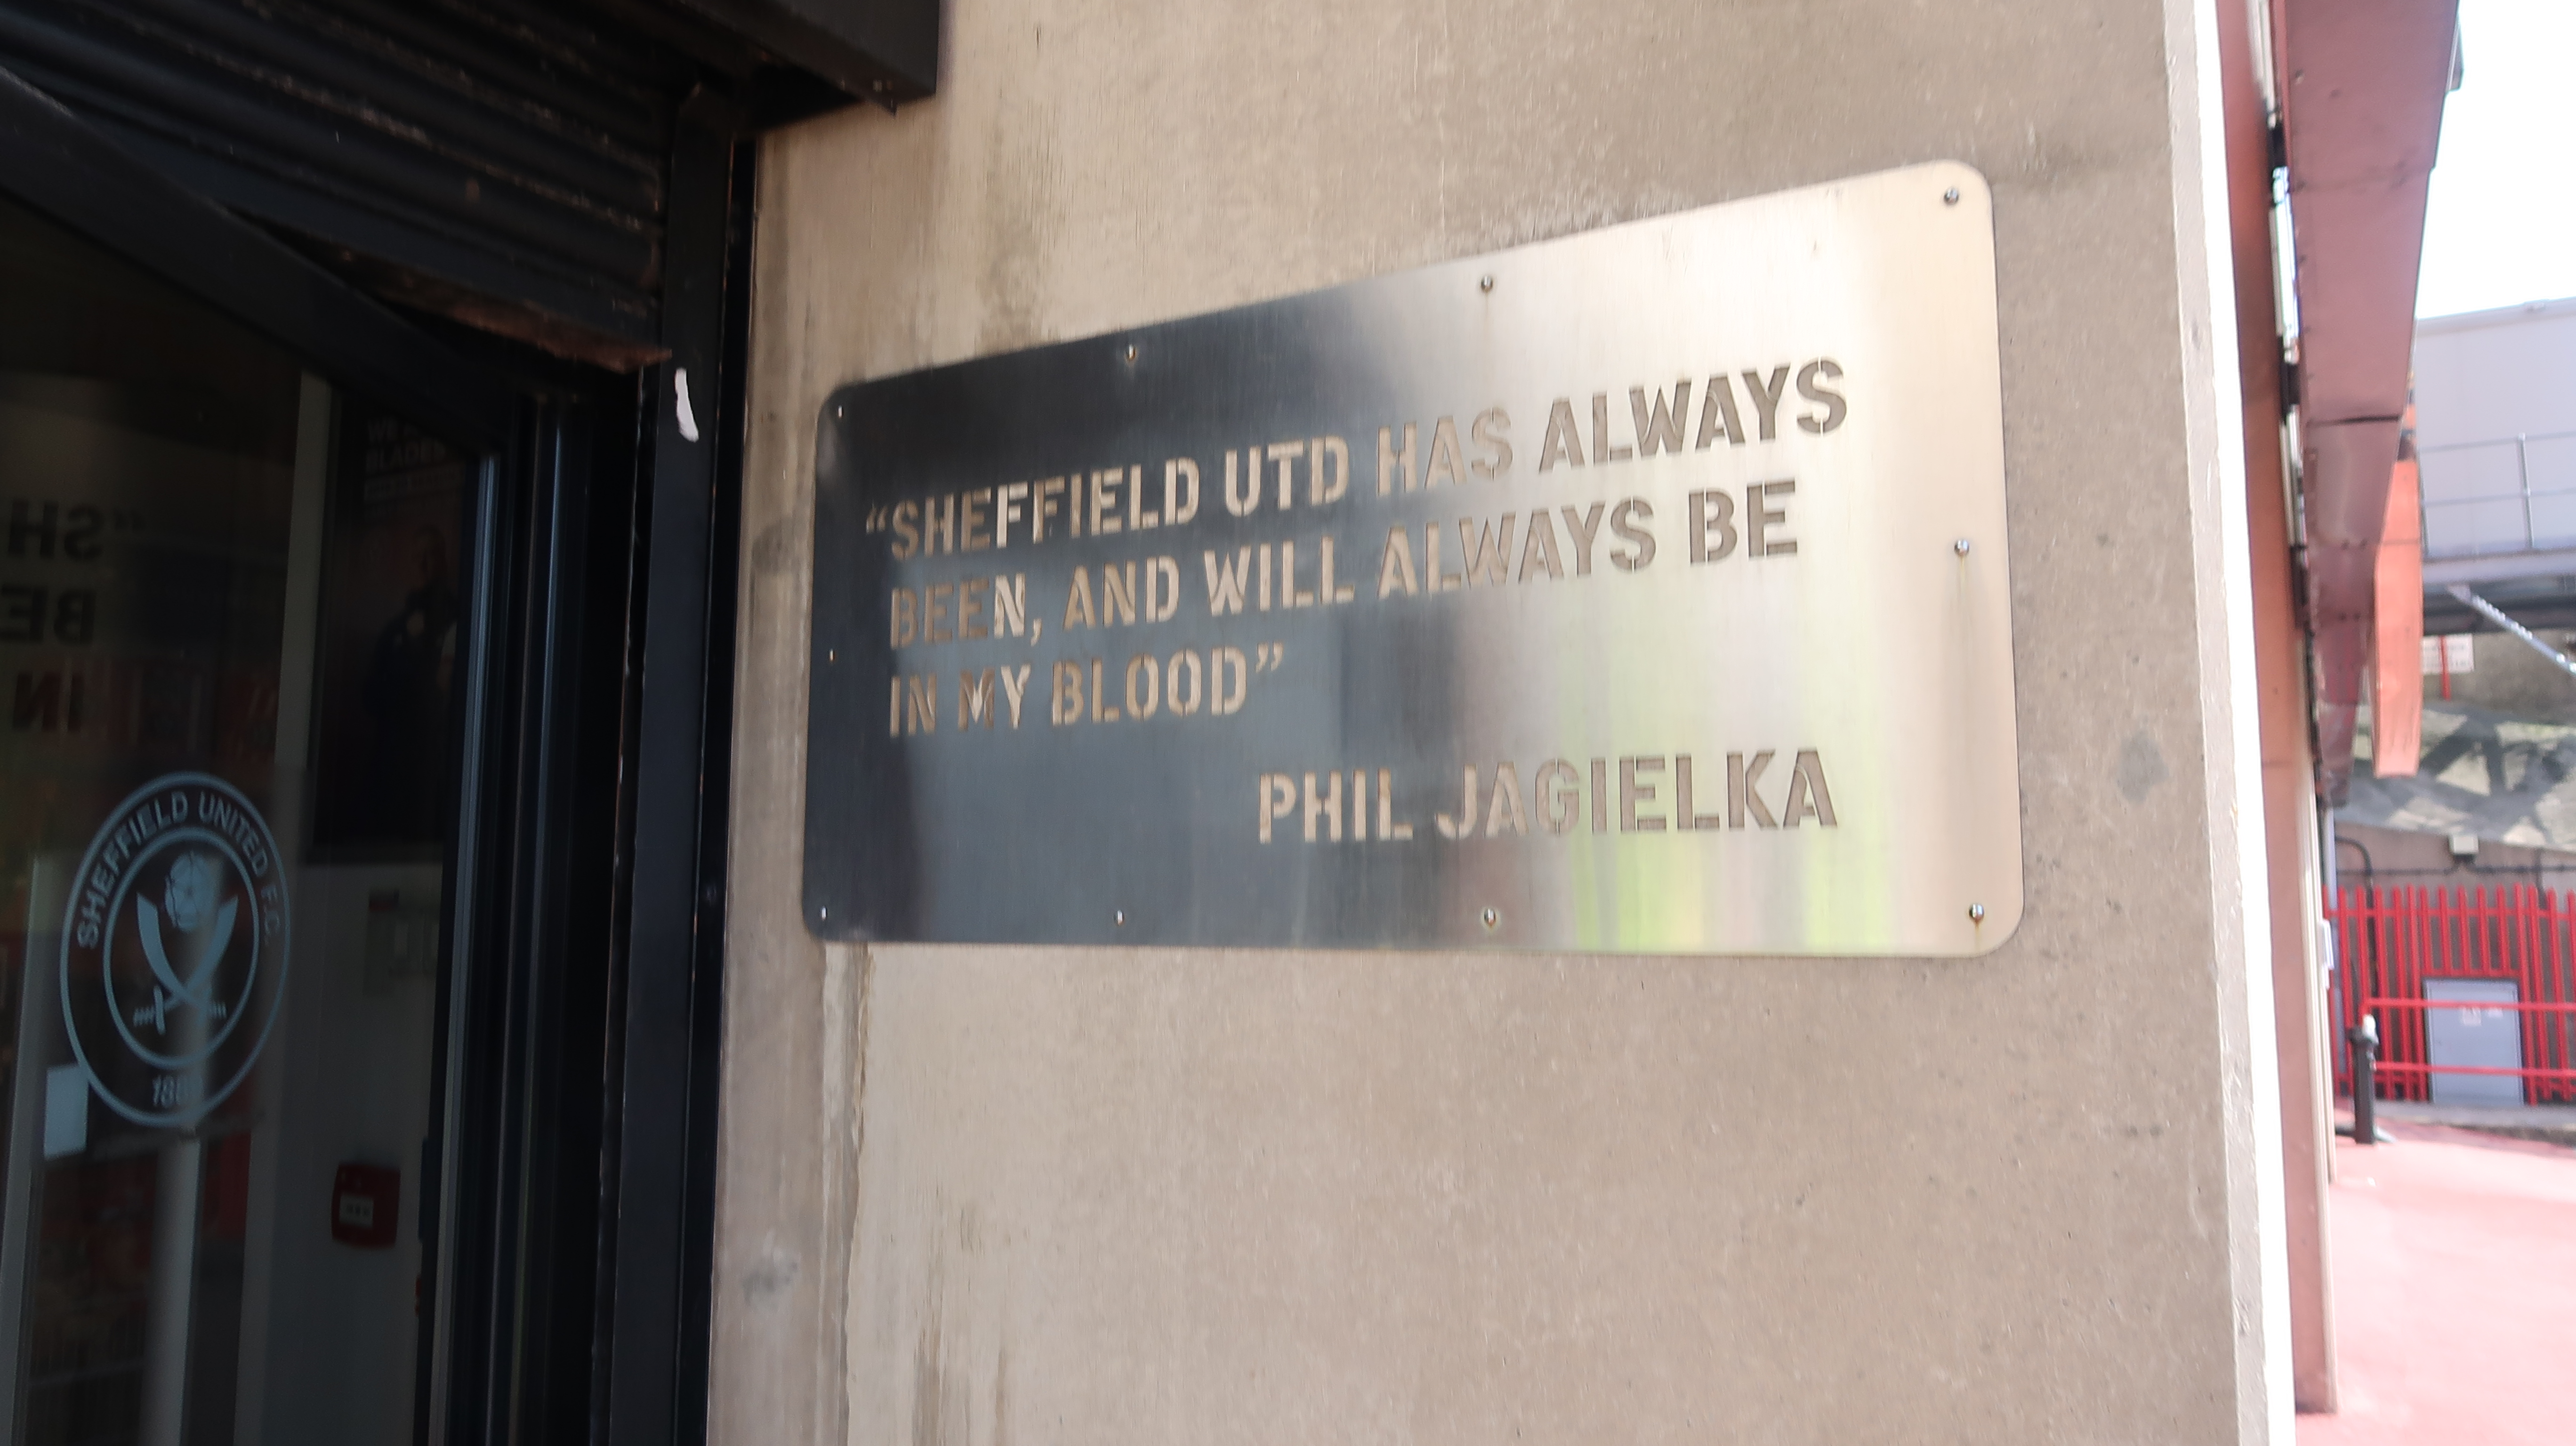 Jags is a United legend